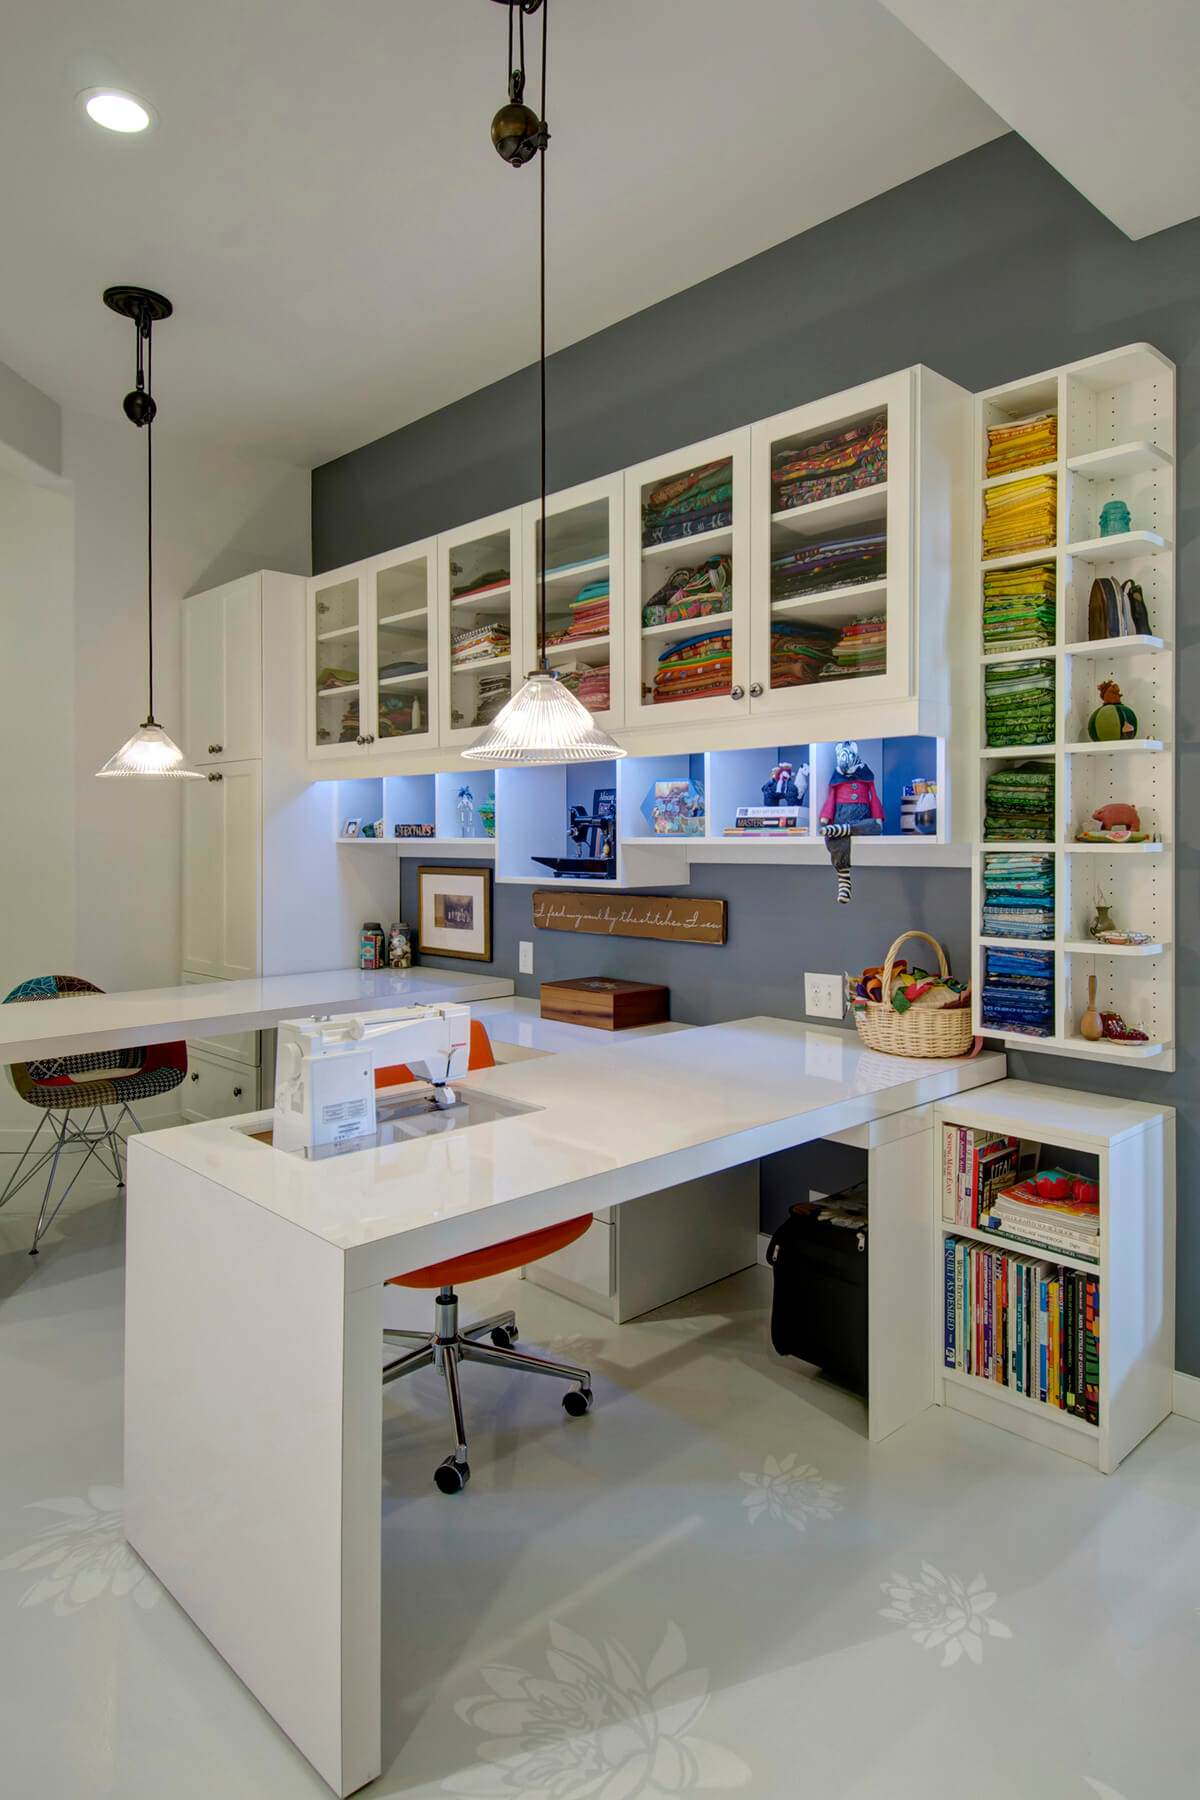 23 Craft Room Design Ideas (Creative Rooms)